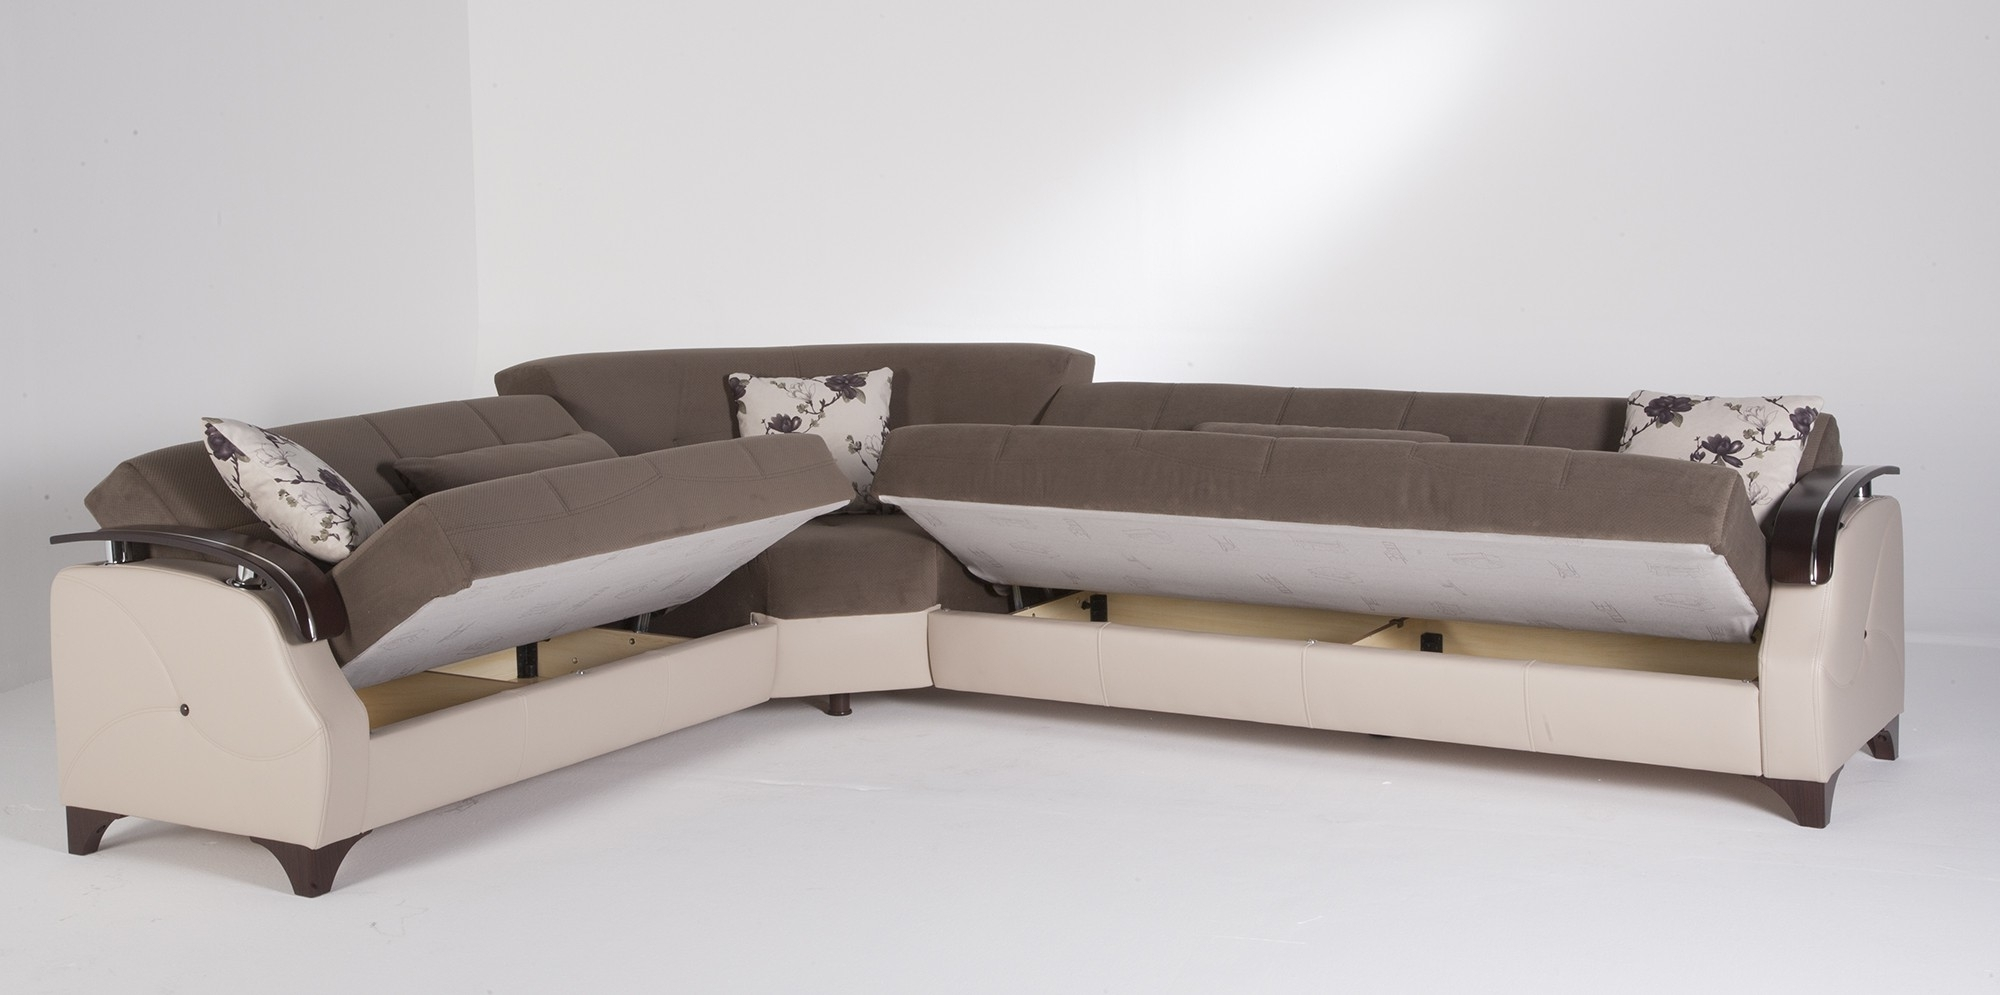 Famous Sectional Sofa Design: Cheap Sectional Sofas Furniture Design Intended For L Shaped Sectional Sleeper Sofas (View 8 of 20)